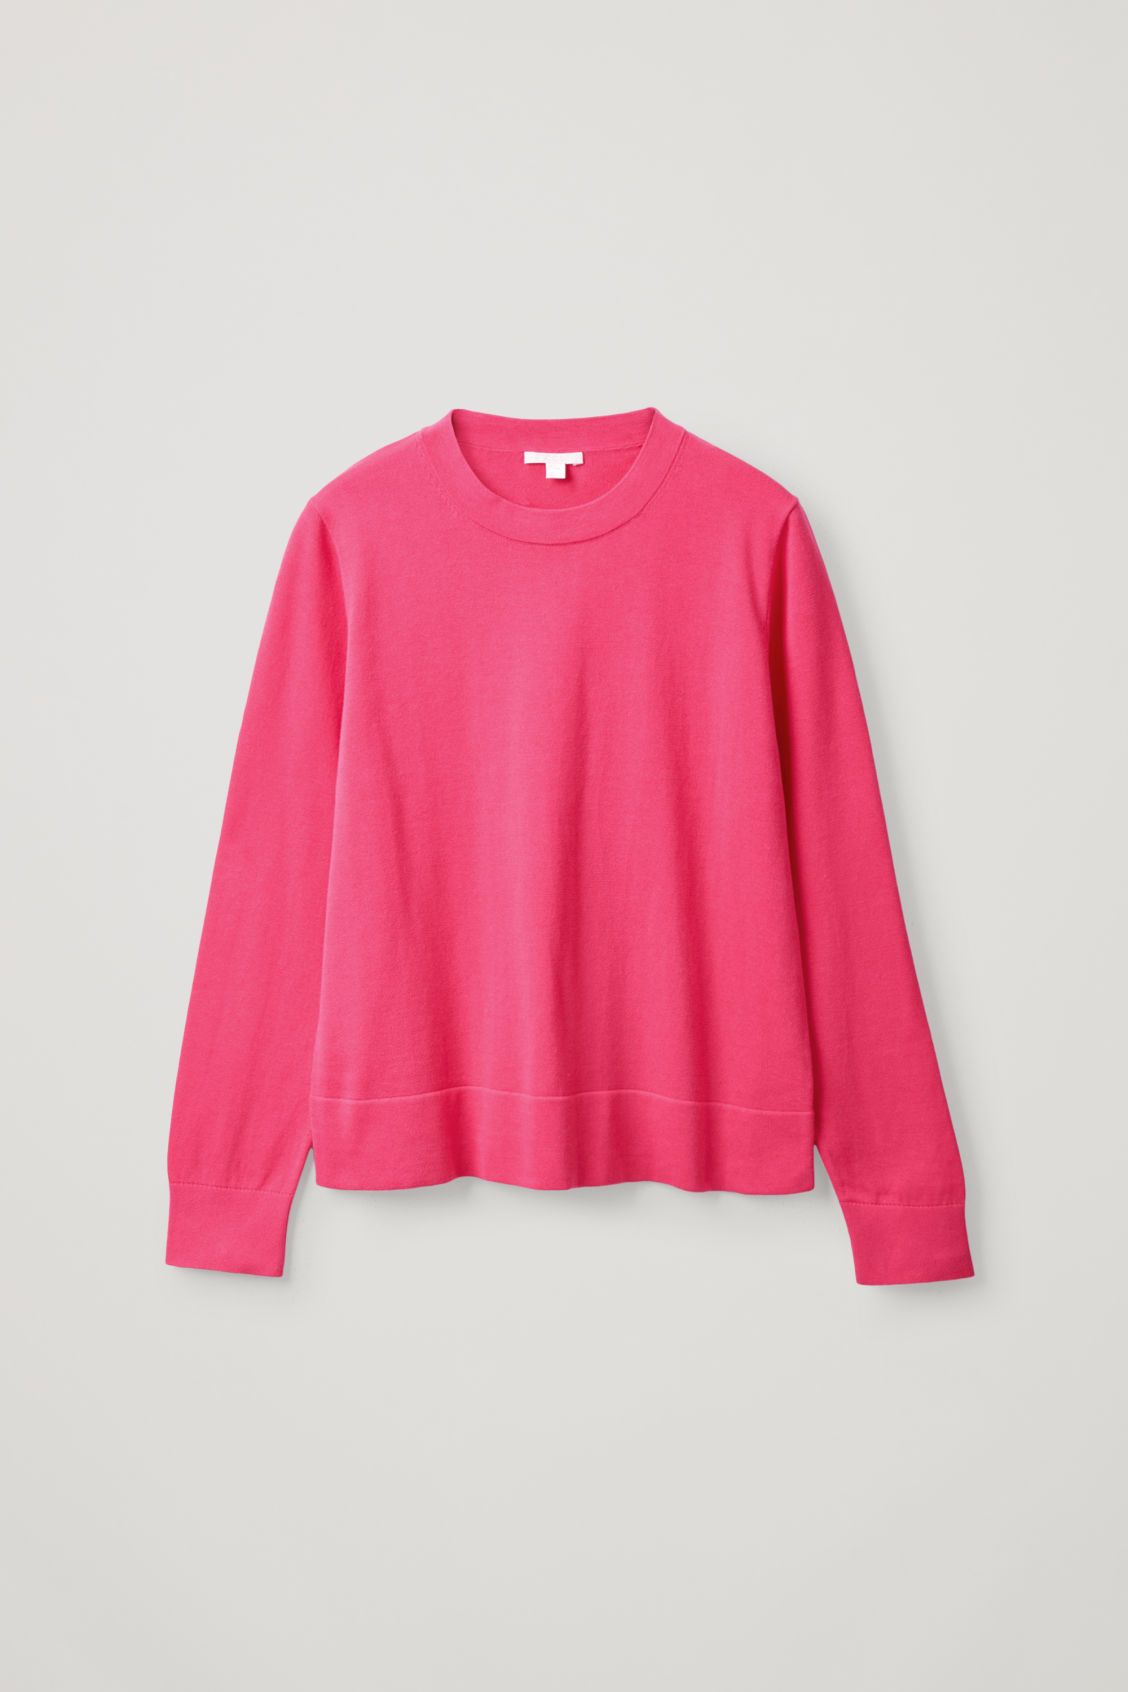 Cos Plain Knit Cotton Top In Pink